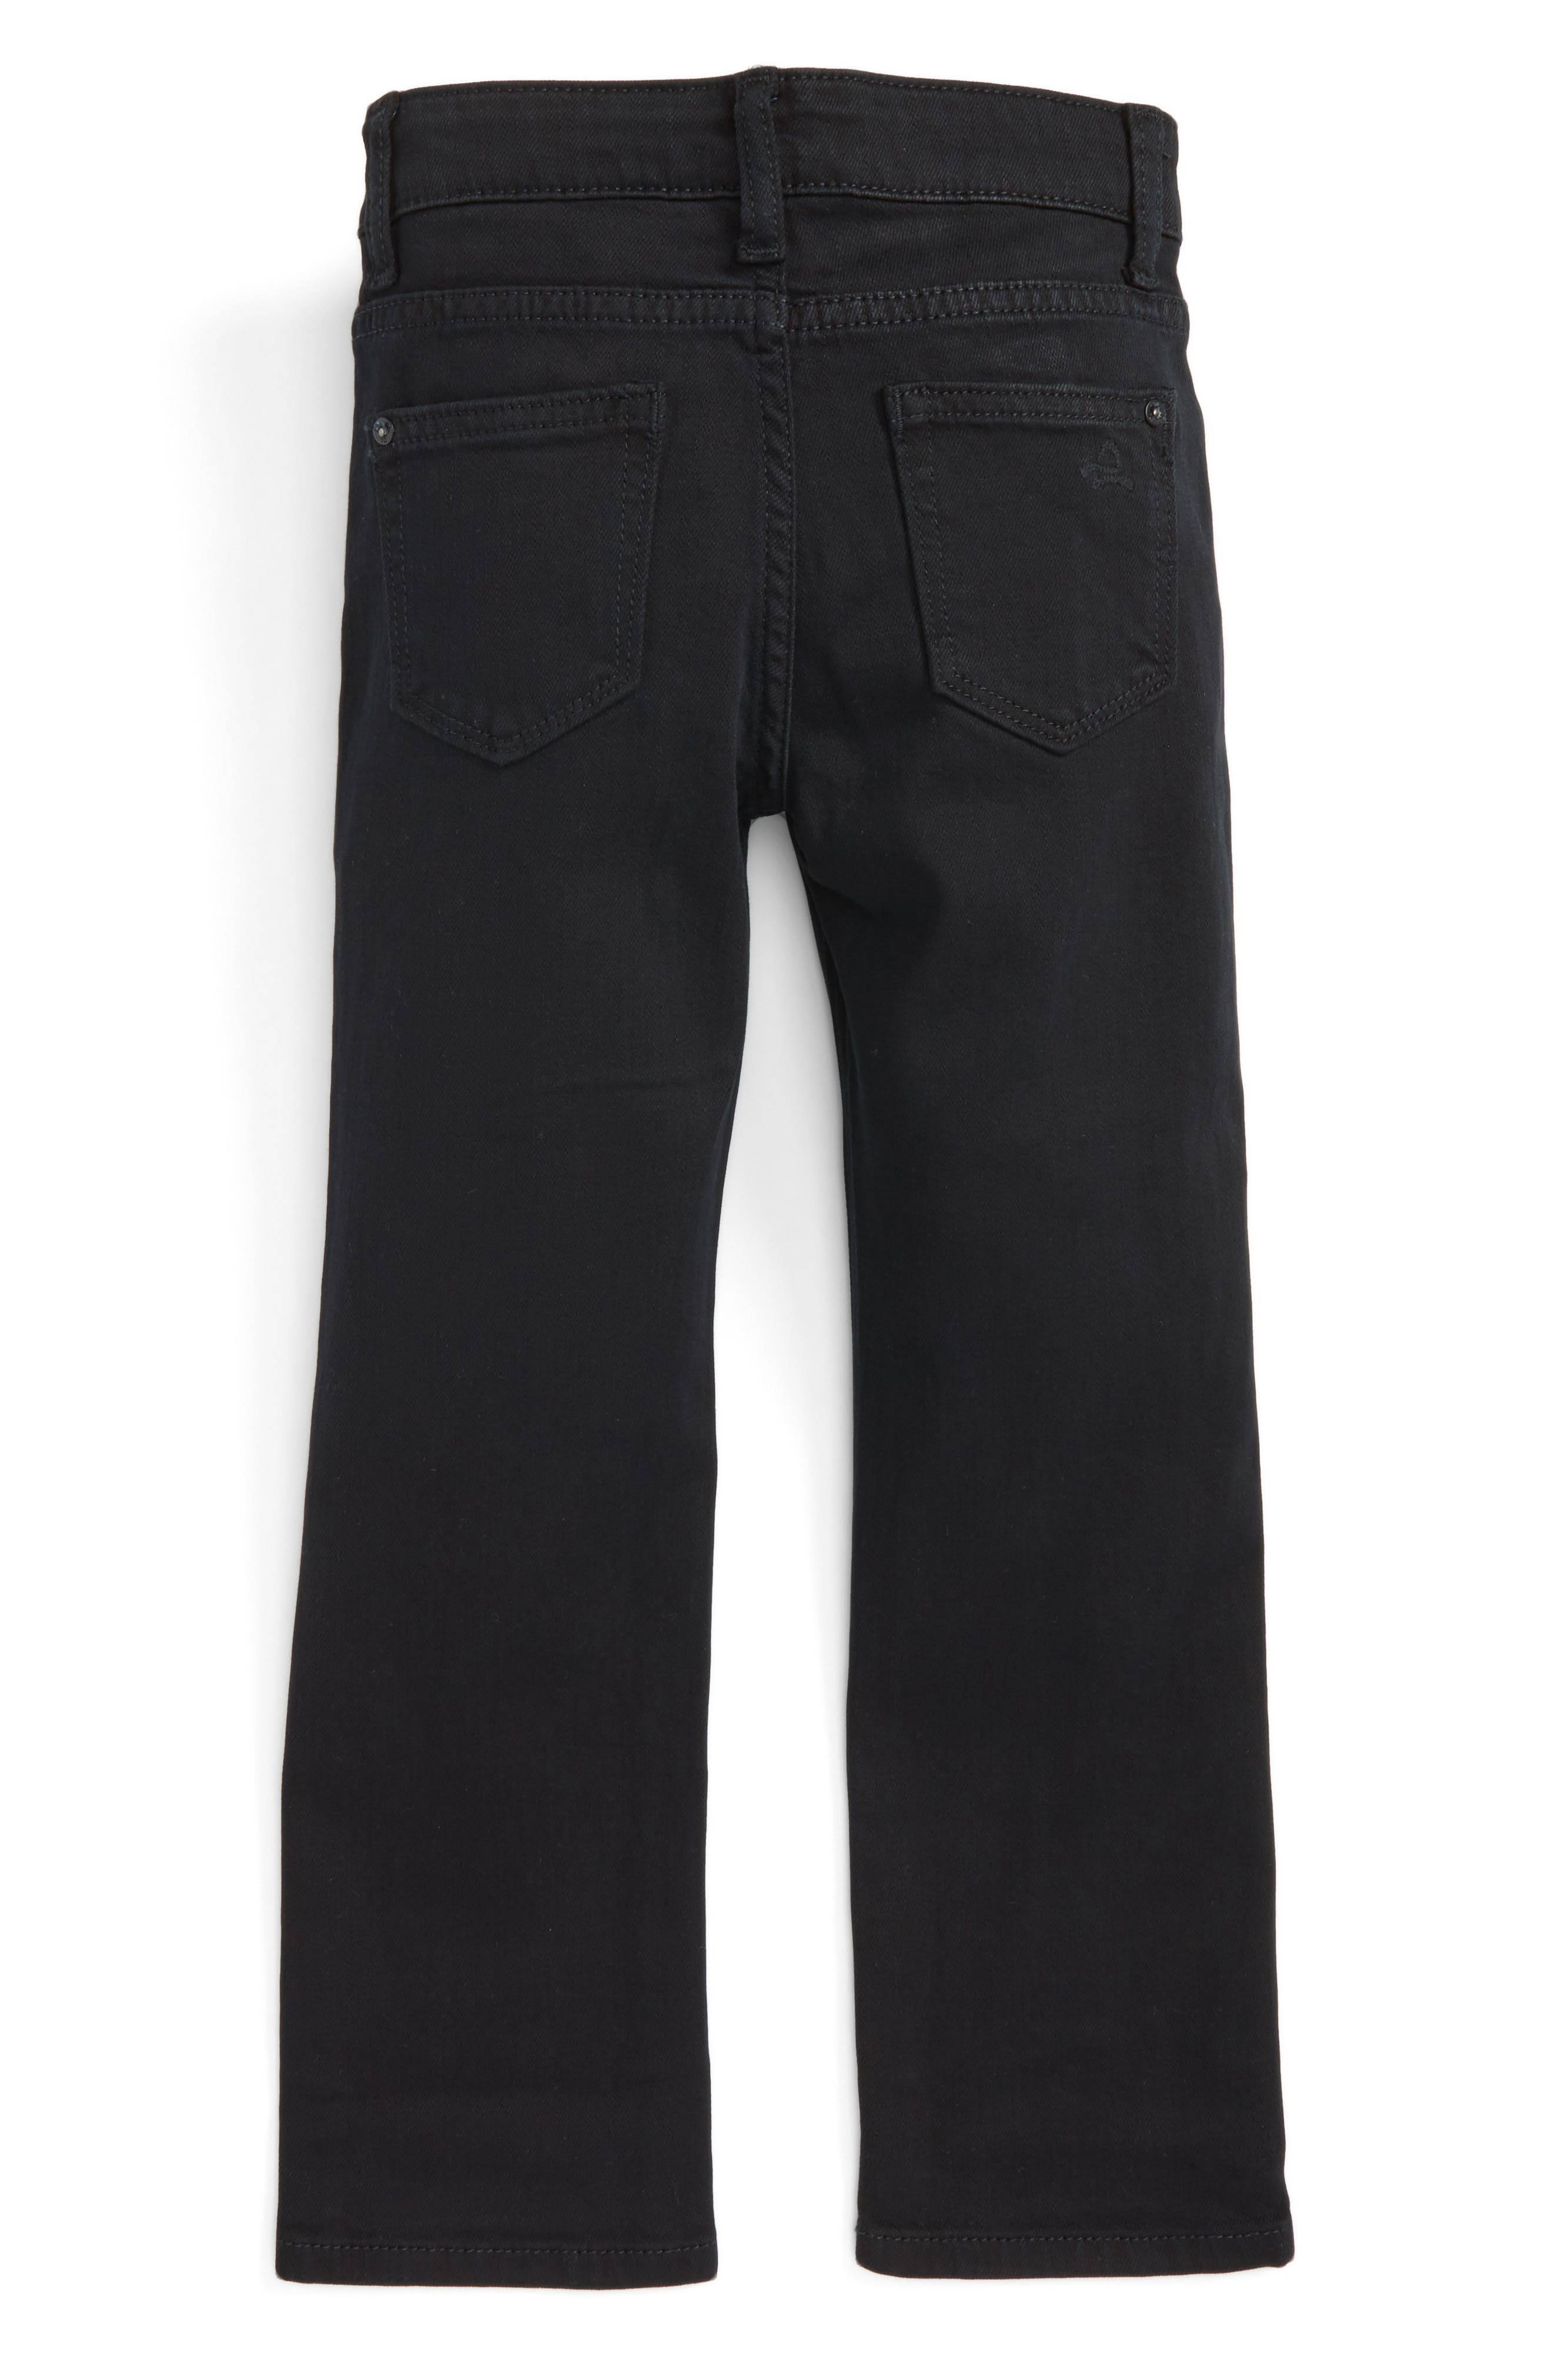 'Brady' Slim Fit Jeans,                             Alternate thumbnail 2, color,                             CLAY